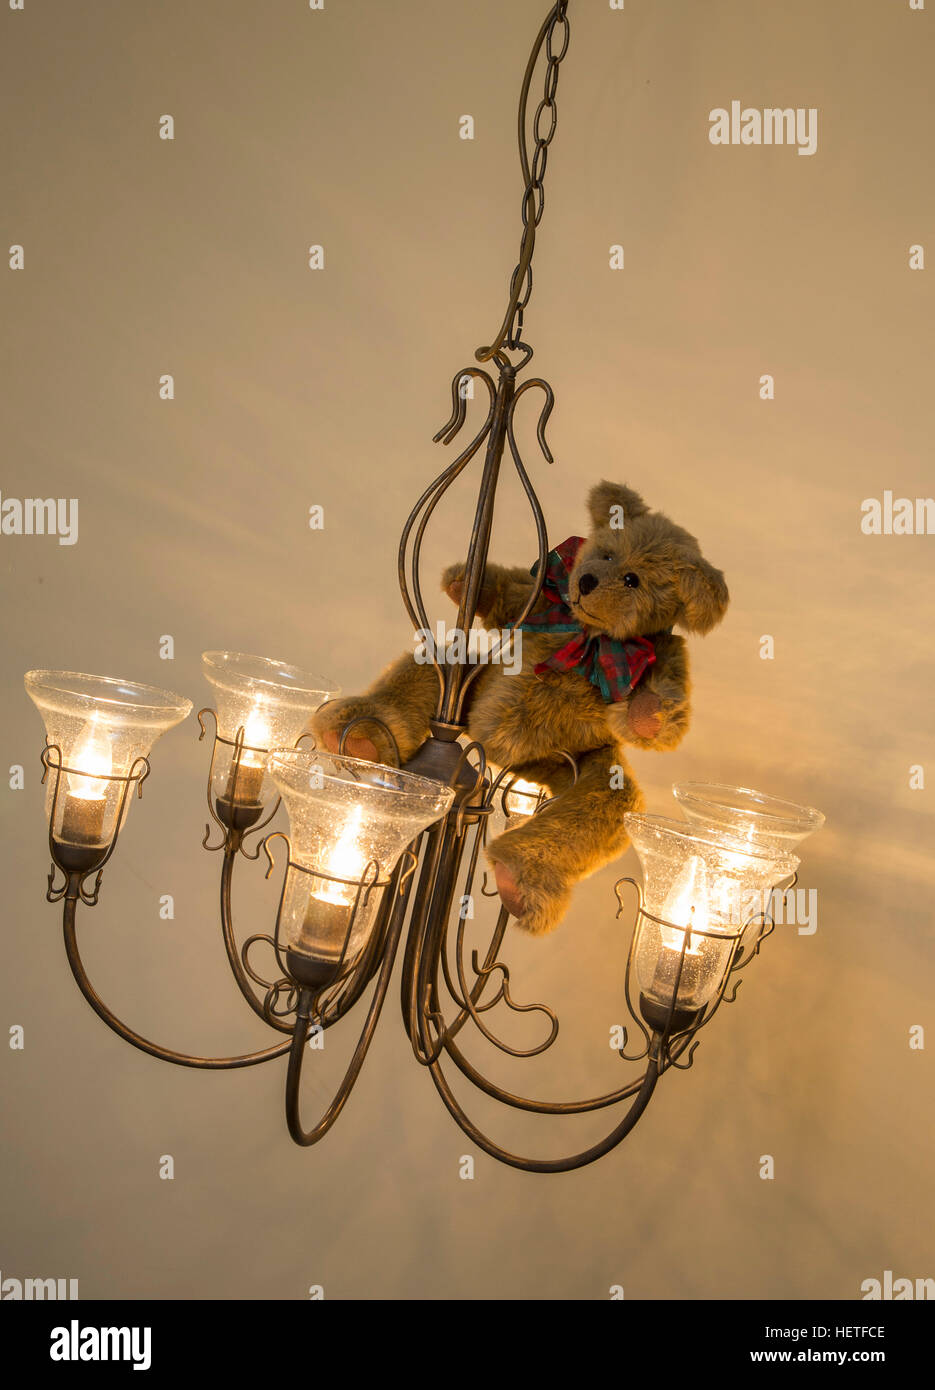 Teddy bear wearing a christmas bow swinging from a chandelier stock teddy bear wearing a christmas bow swinging from a chandelier aloadofball Image collections